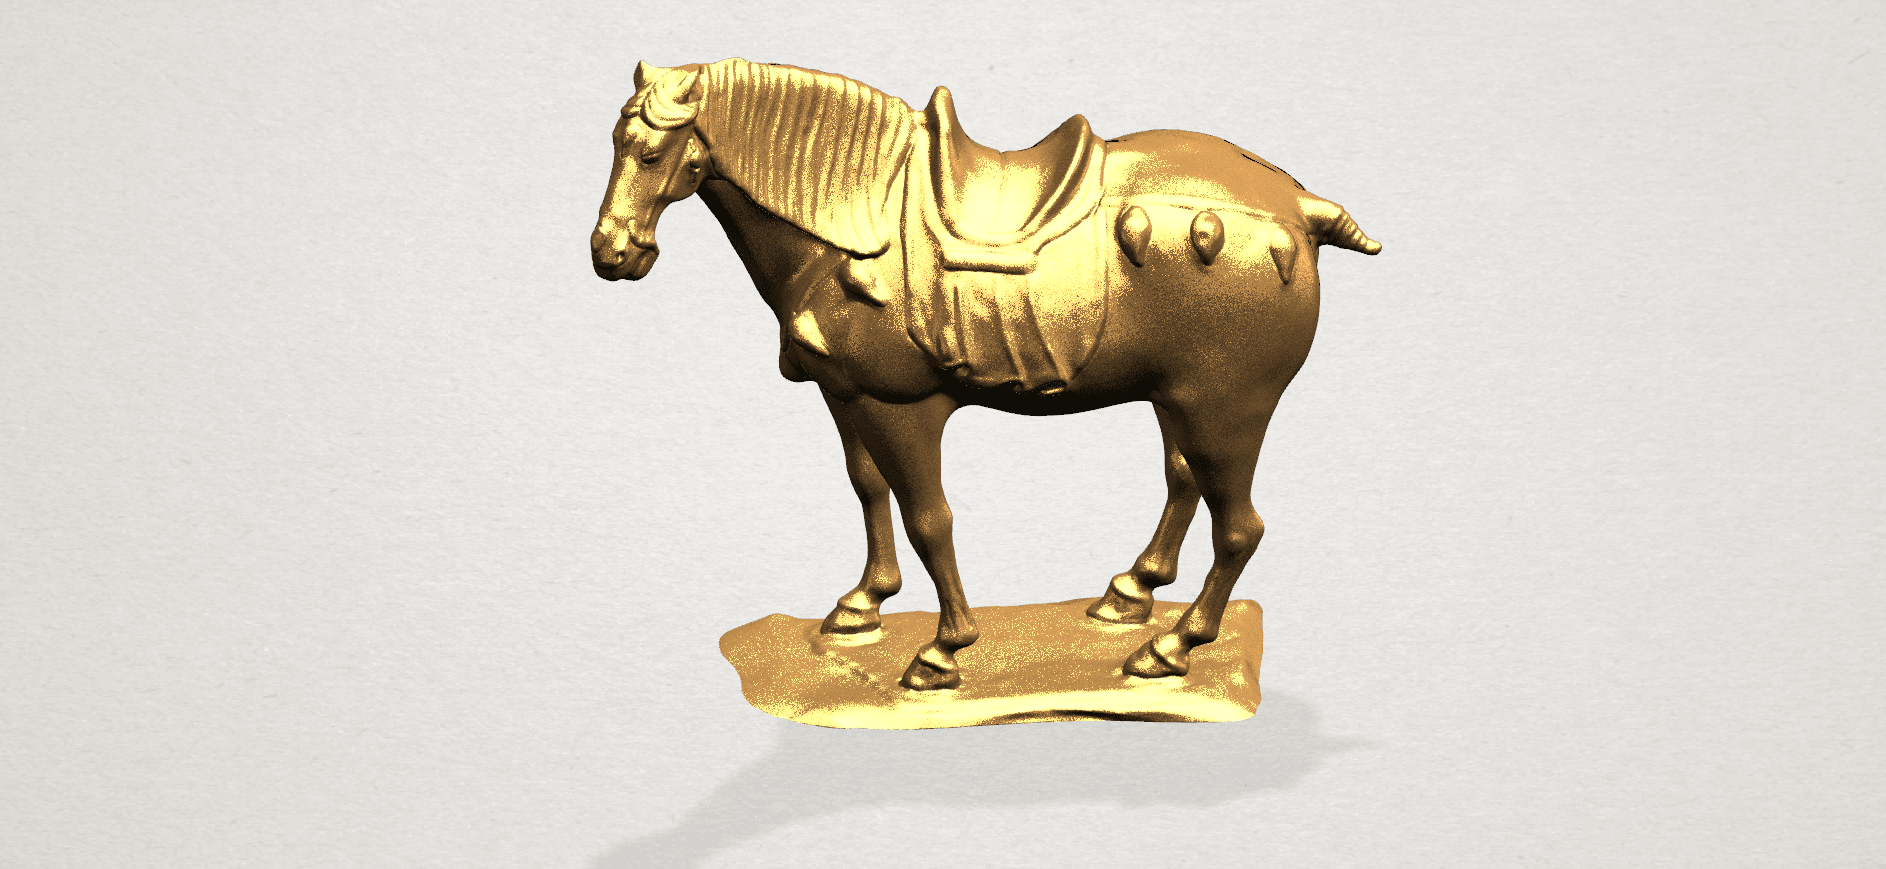 Horse (iv) A08.png Download free STL file Horse 04 • 3D print design, GeorgesNikkei